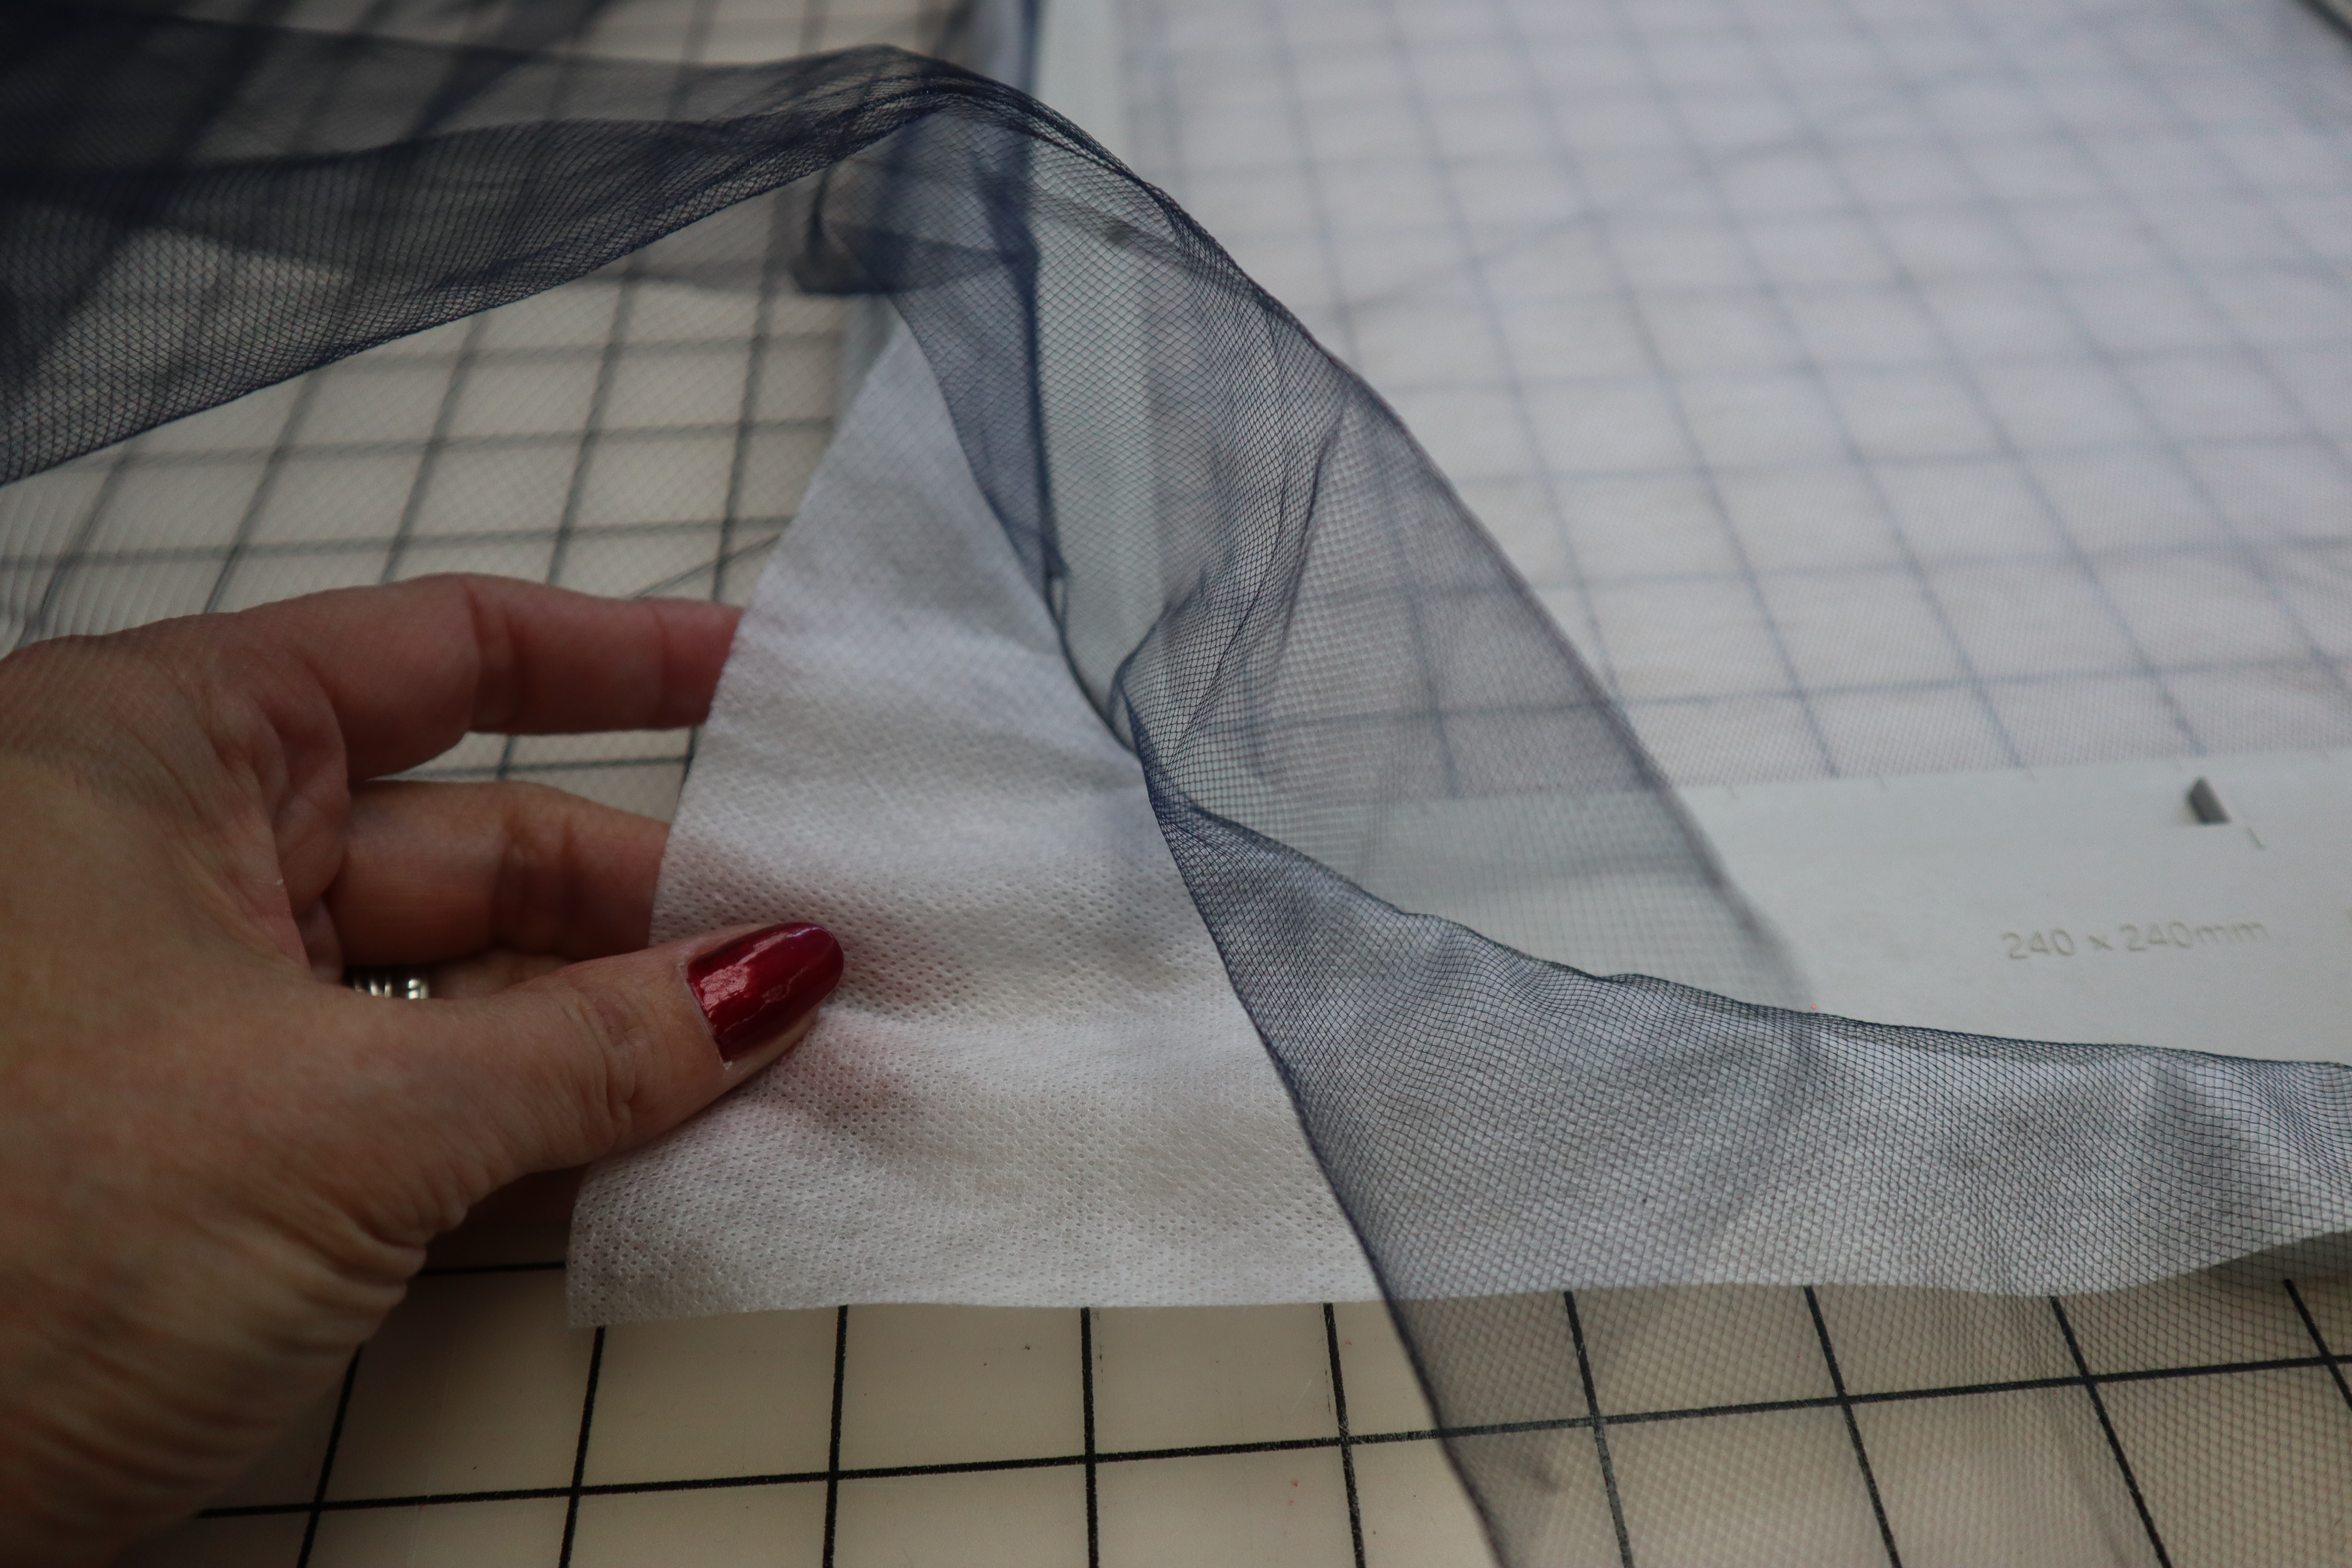 Fashion Sewing Archives - Angela Wolf's Sewing Blog